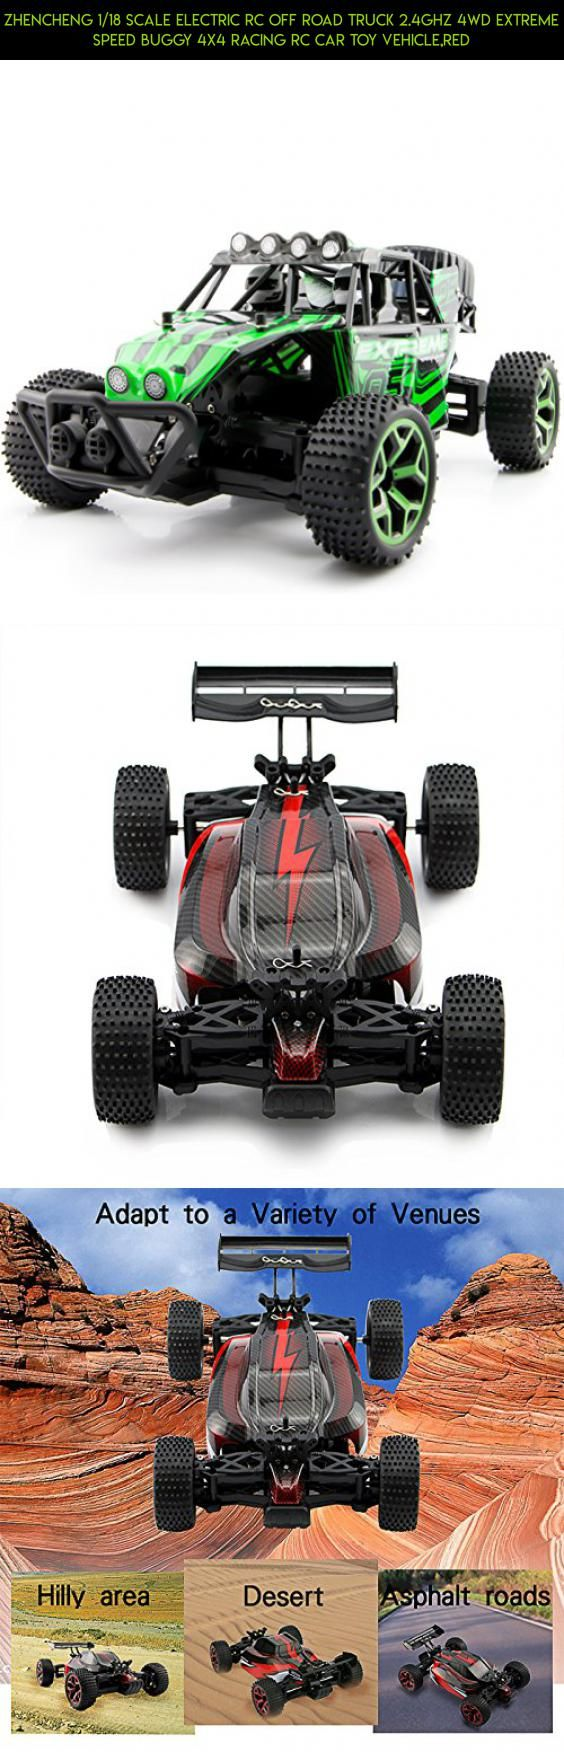 Zhencheng 1/18 Scale Electric RC Off Road Truck 2.4Ghz 4WD Extreme Speed Buggy 4x4 Racing RC Car Toy Vehicle,Red #fpv #kit #camera #racing #plans #drone #a959 #gadgets #technology #wltoys #tech #shopping #parts #products